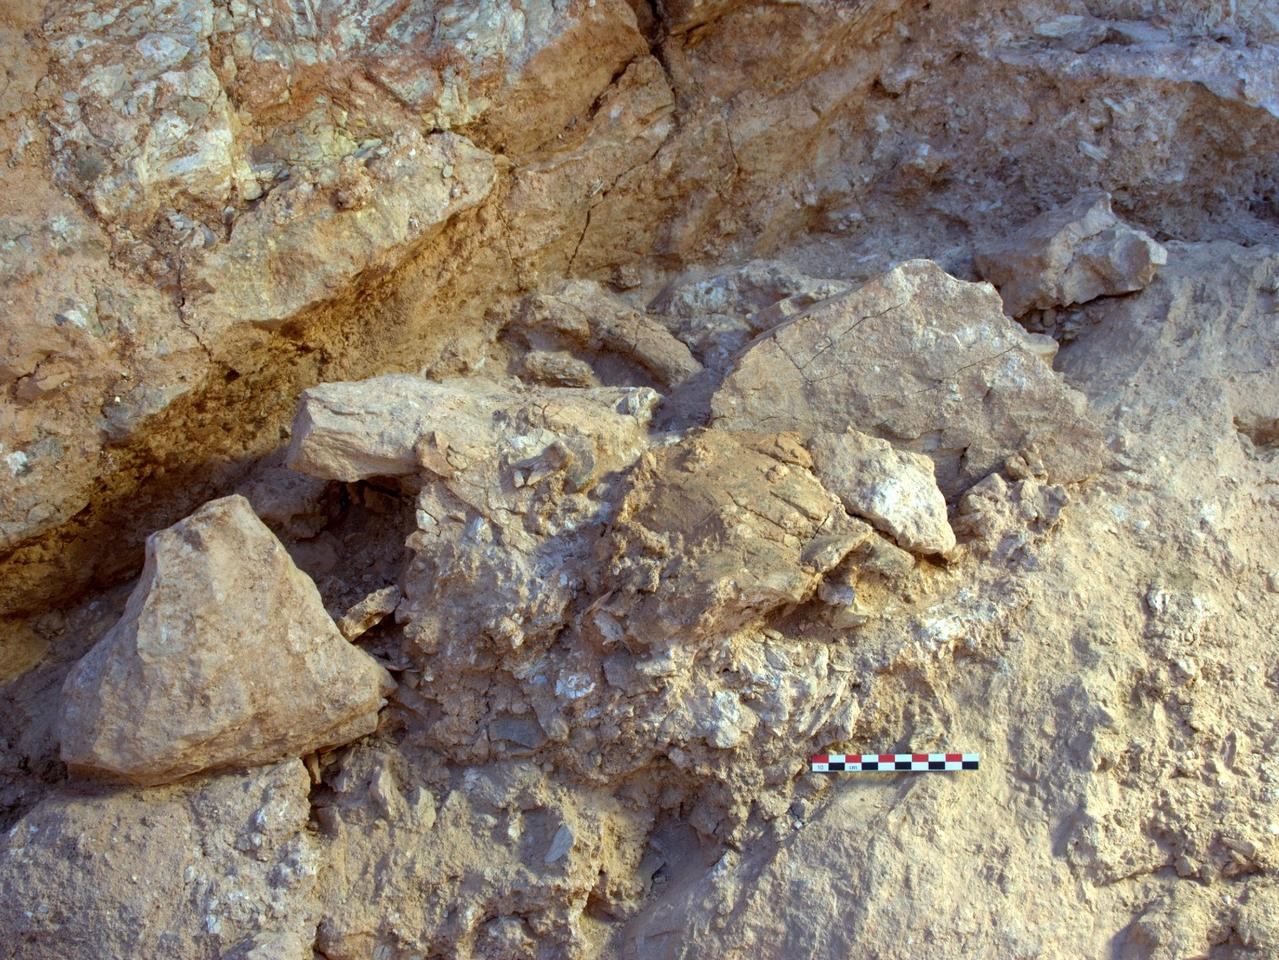 Two of the new Jebel Irhoud (Morocco) fossils in situ as they were discovered during excavation